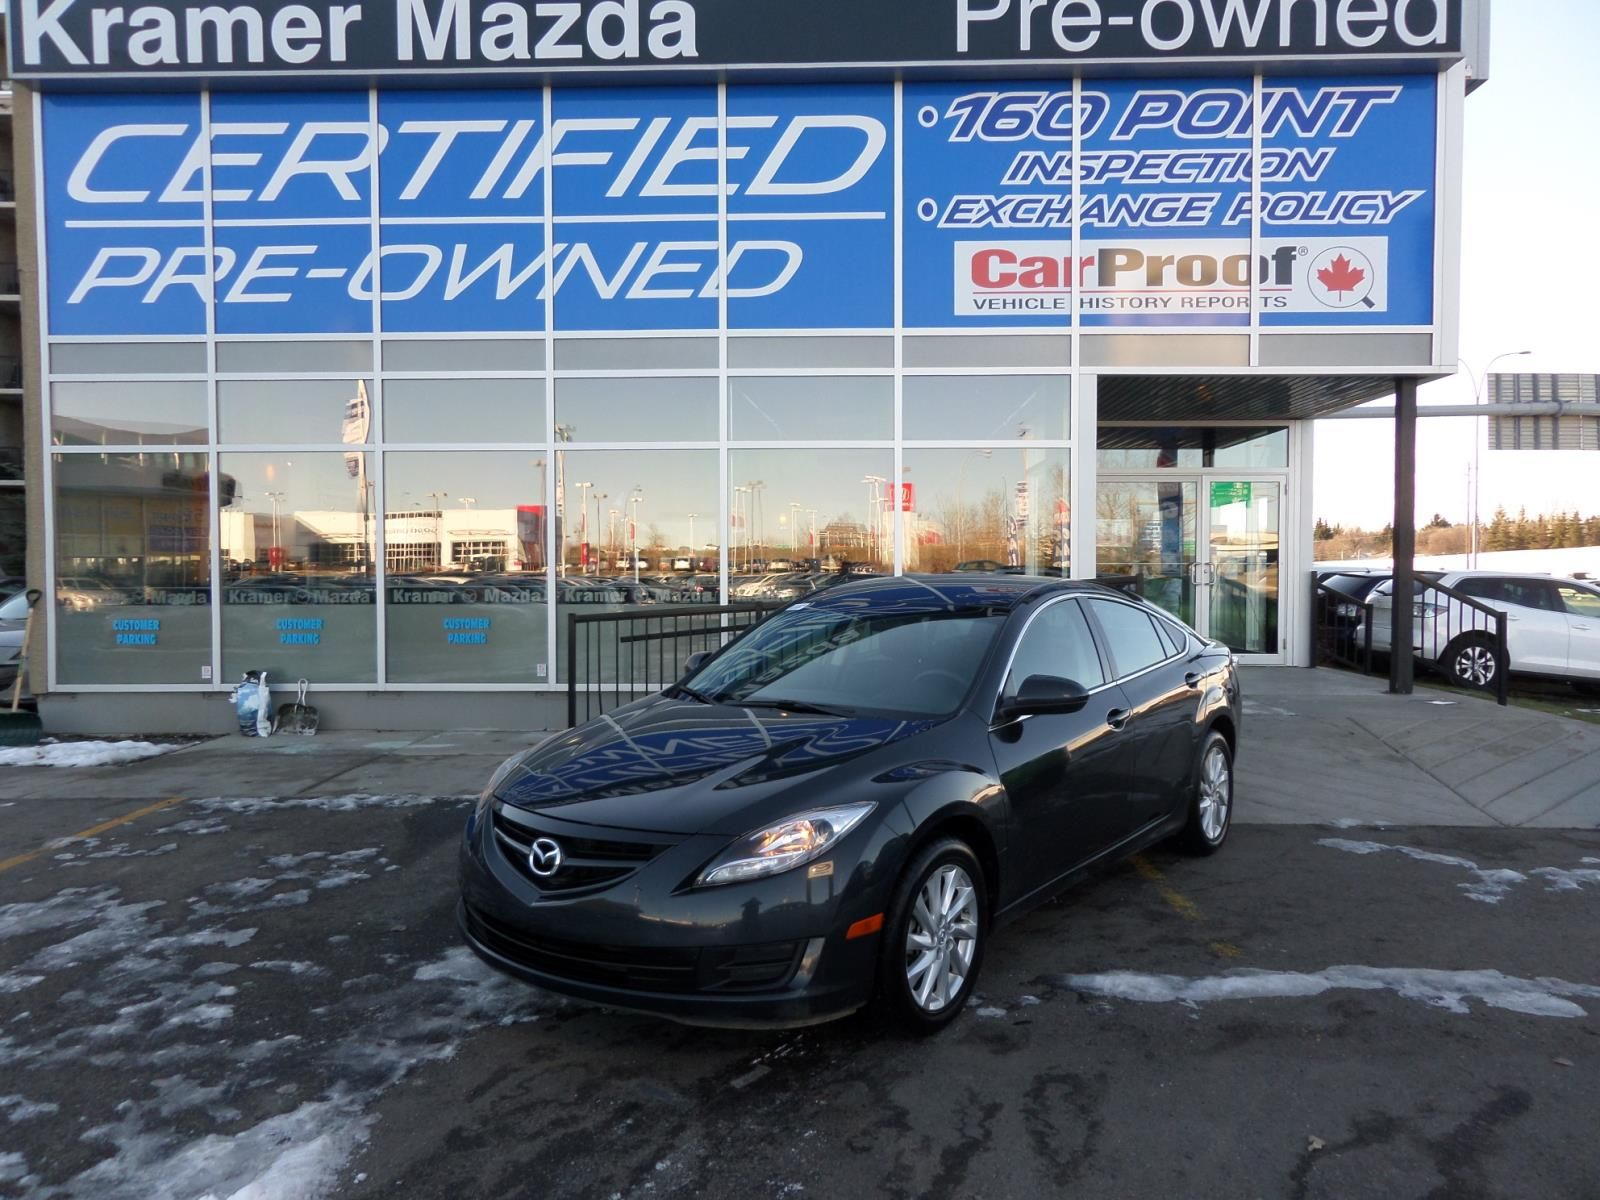 Search Results Calgary Mazda Dealer New And Used Vehicles